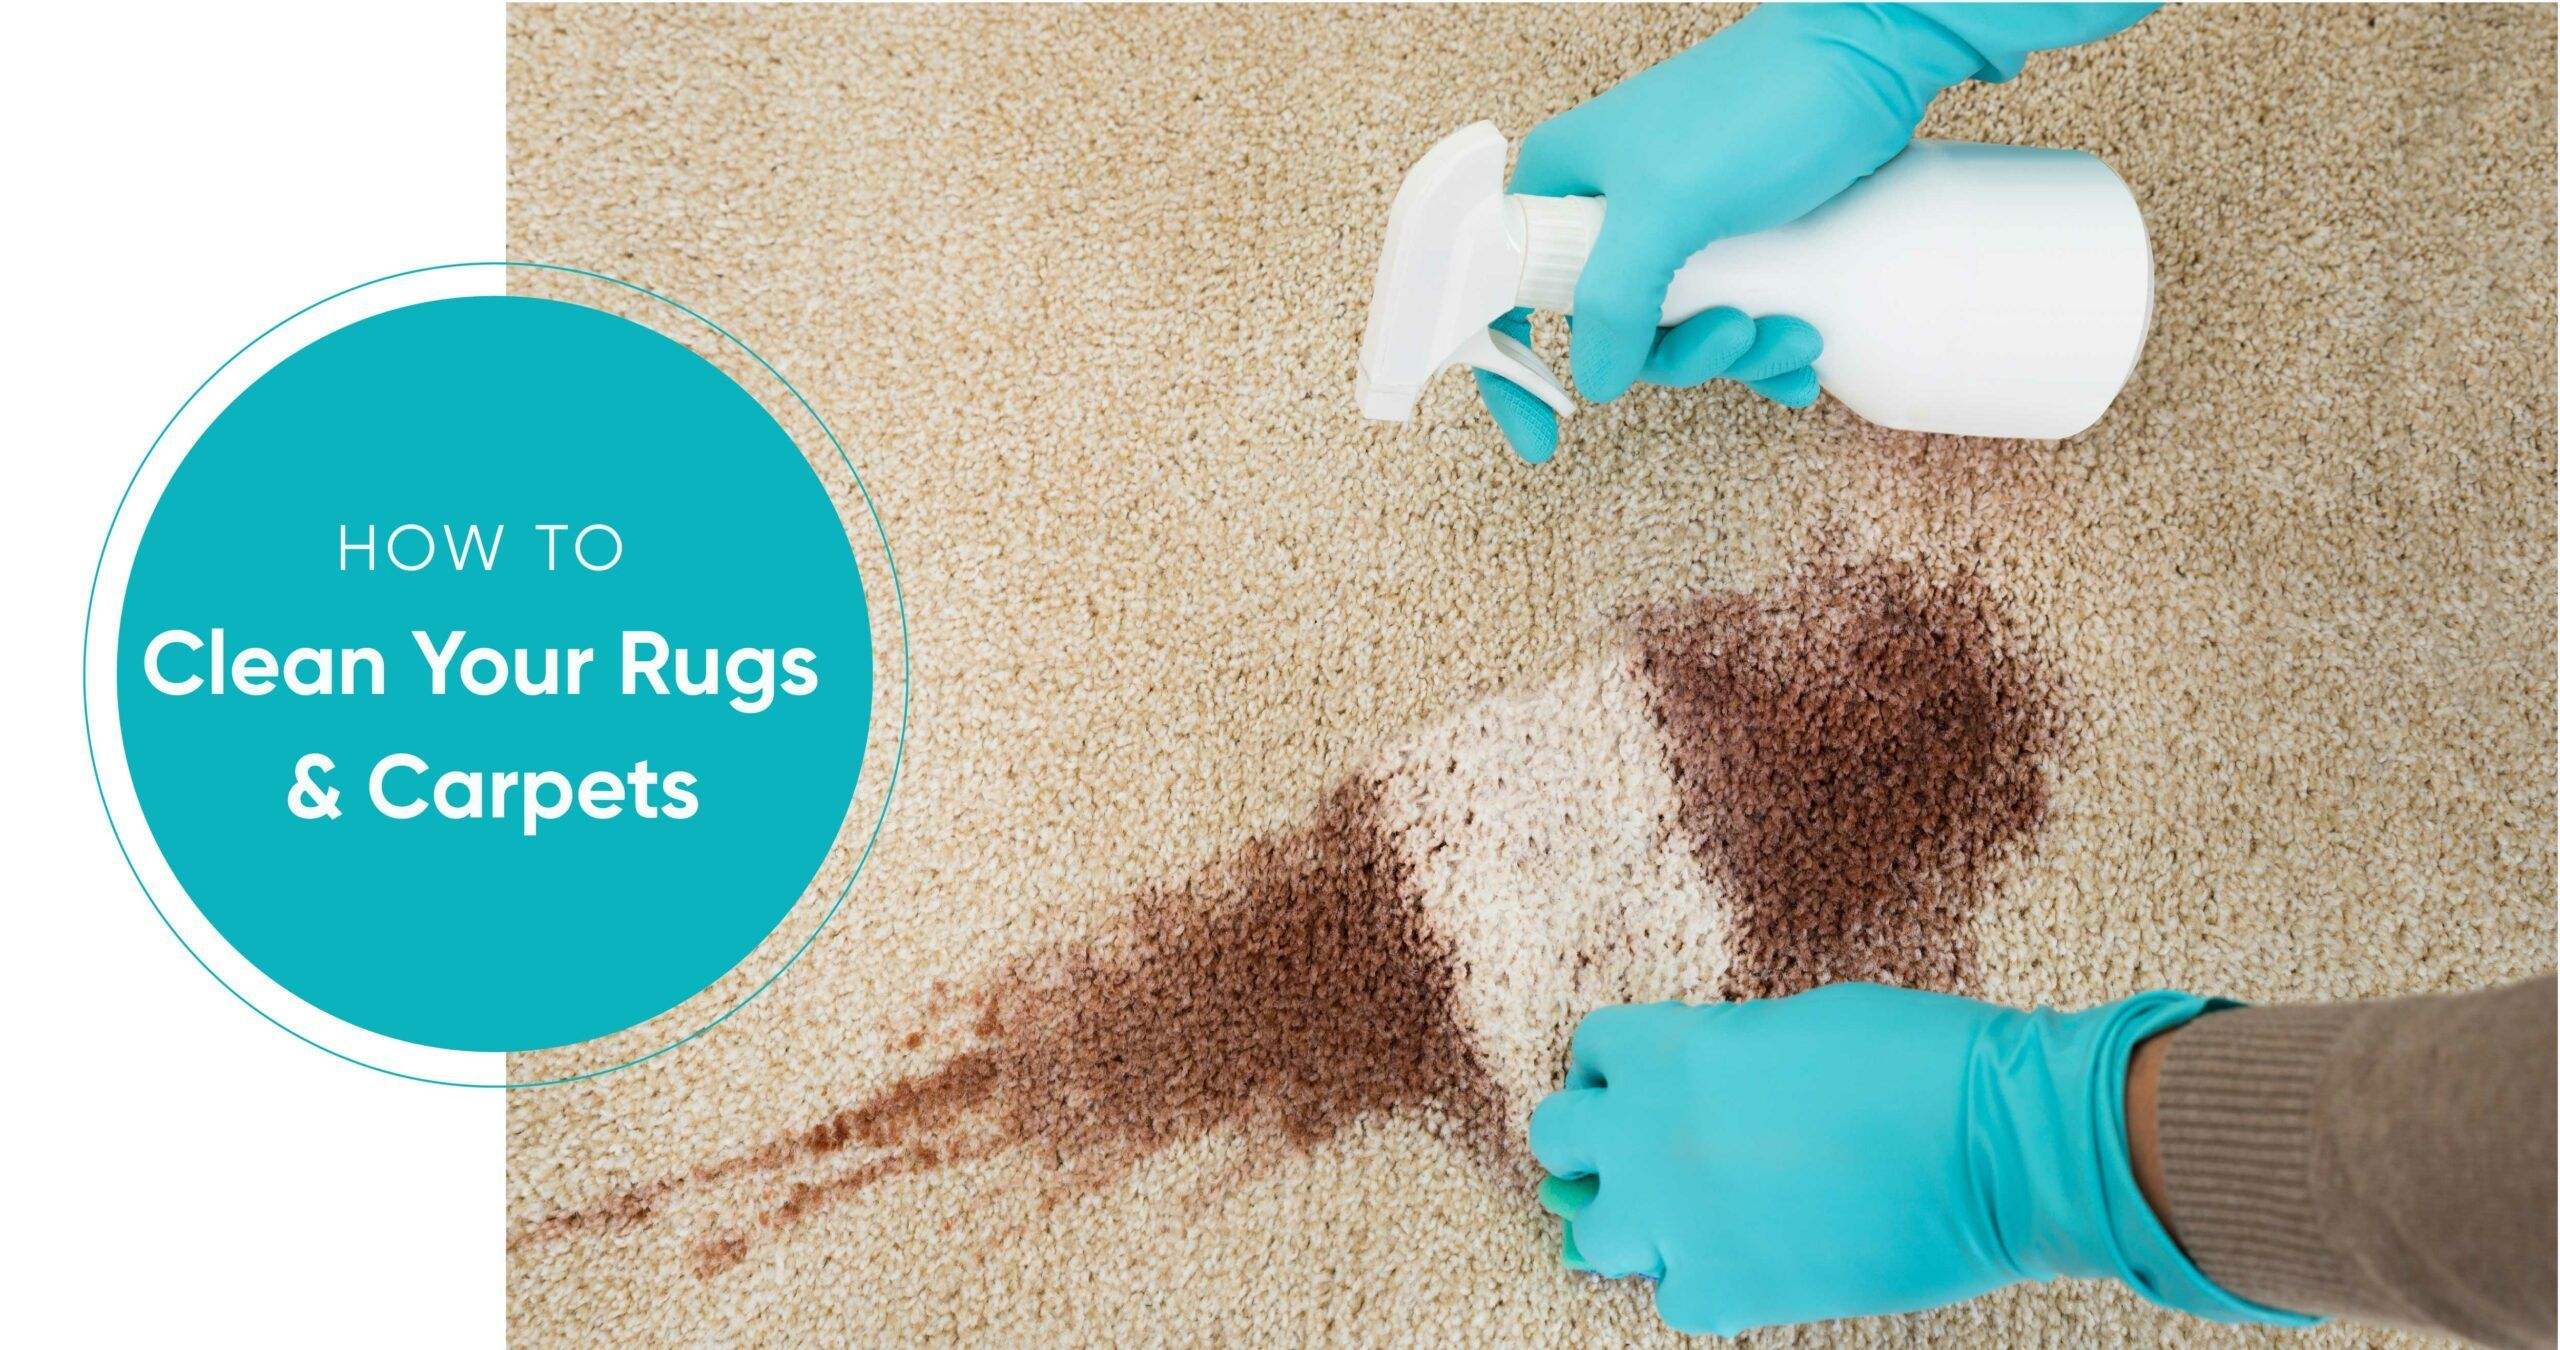 How to Clean Carpets and Rugs Without Professional Help